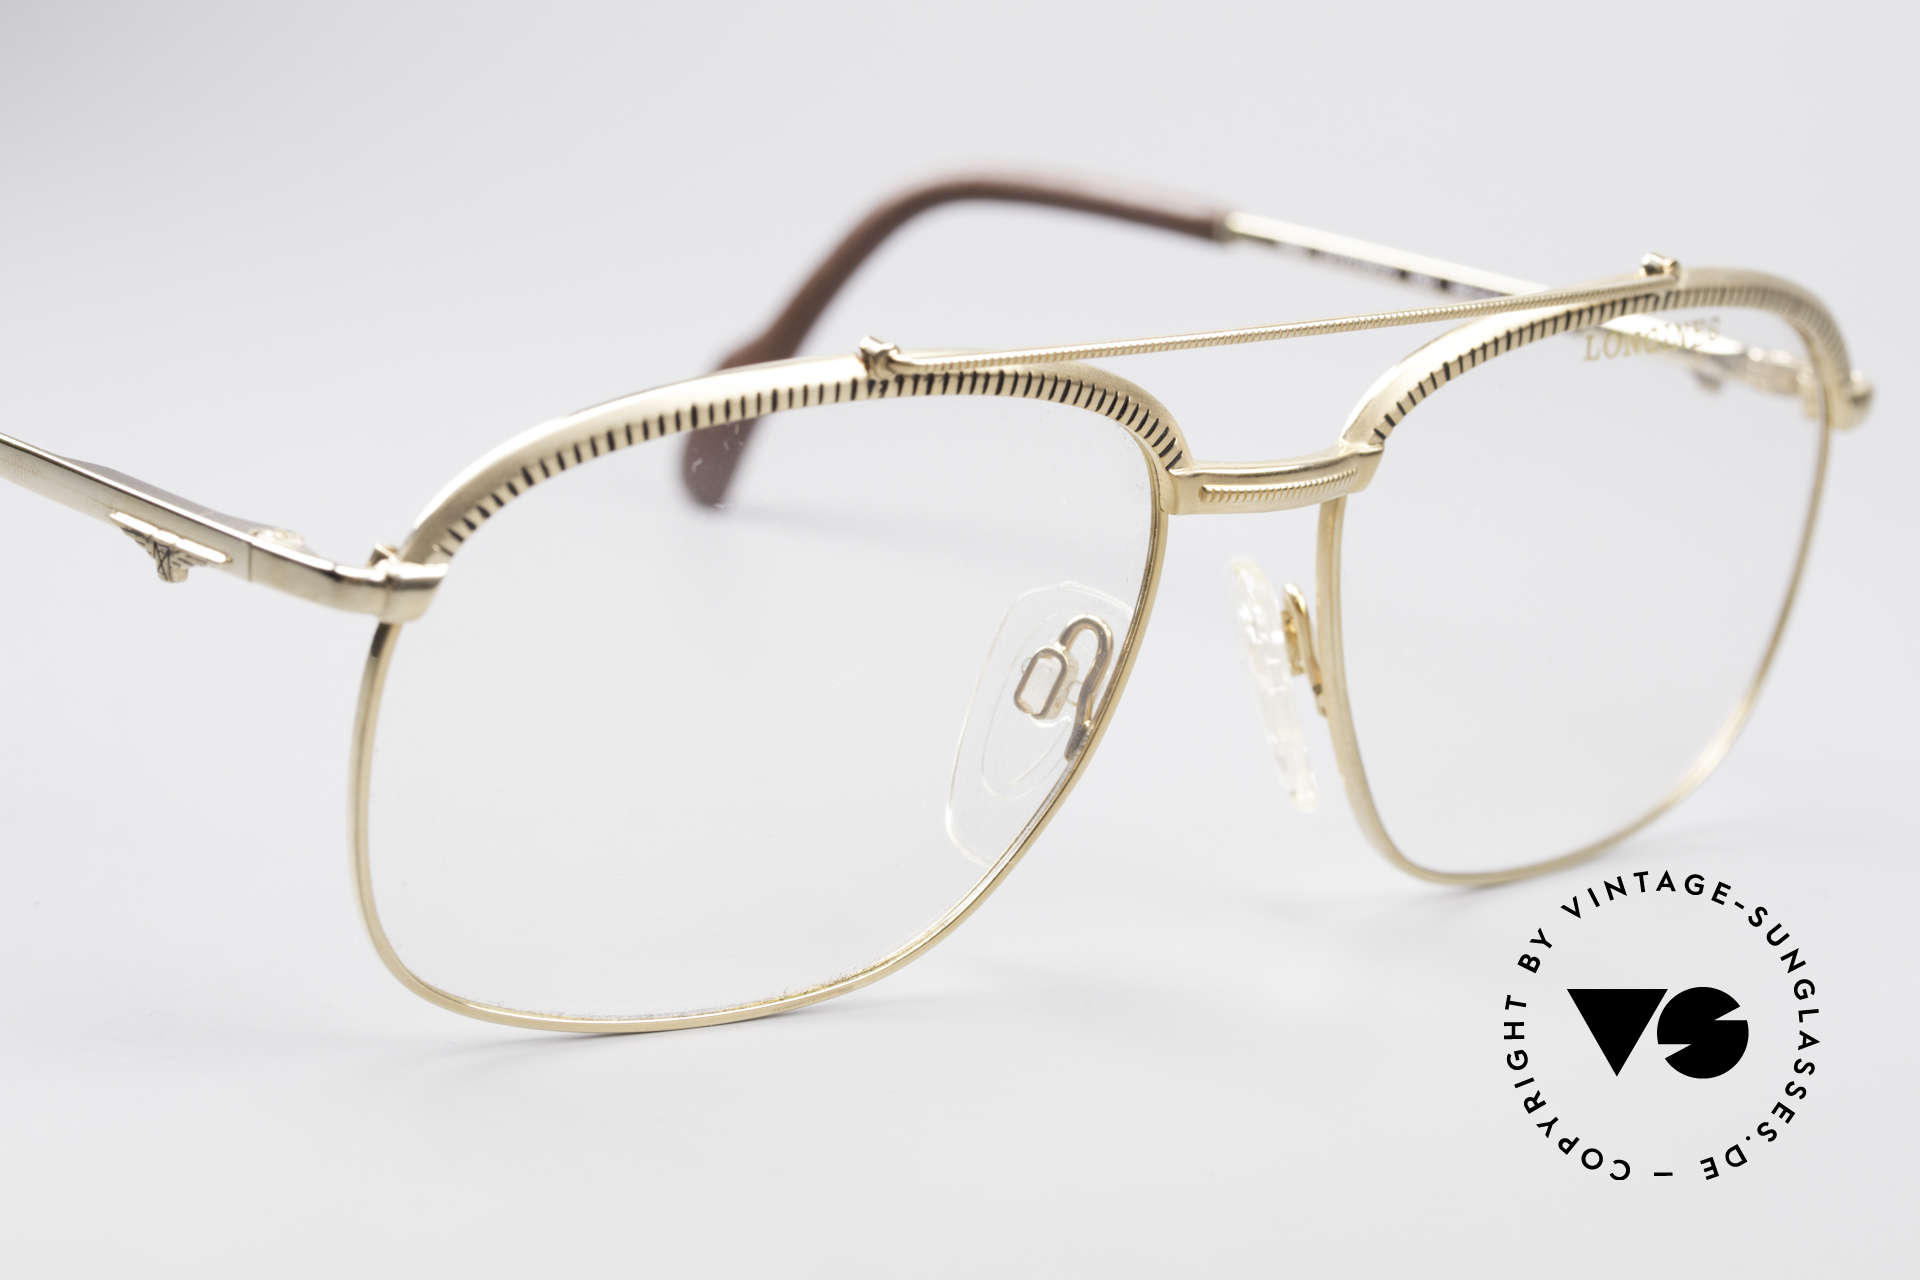 Longines 0172 80's Luxury Eyeglasses, unworn, one of a kind (like all our rare vintage frames), Made for Men